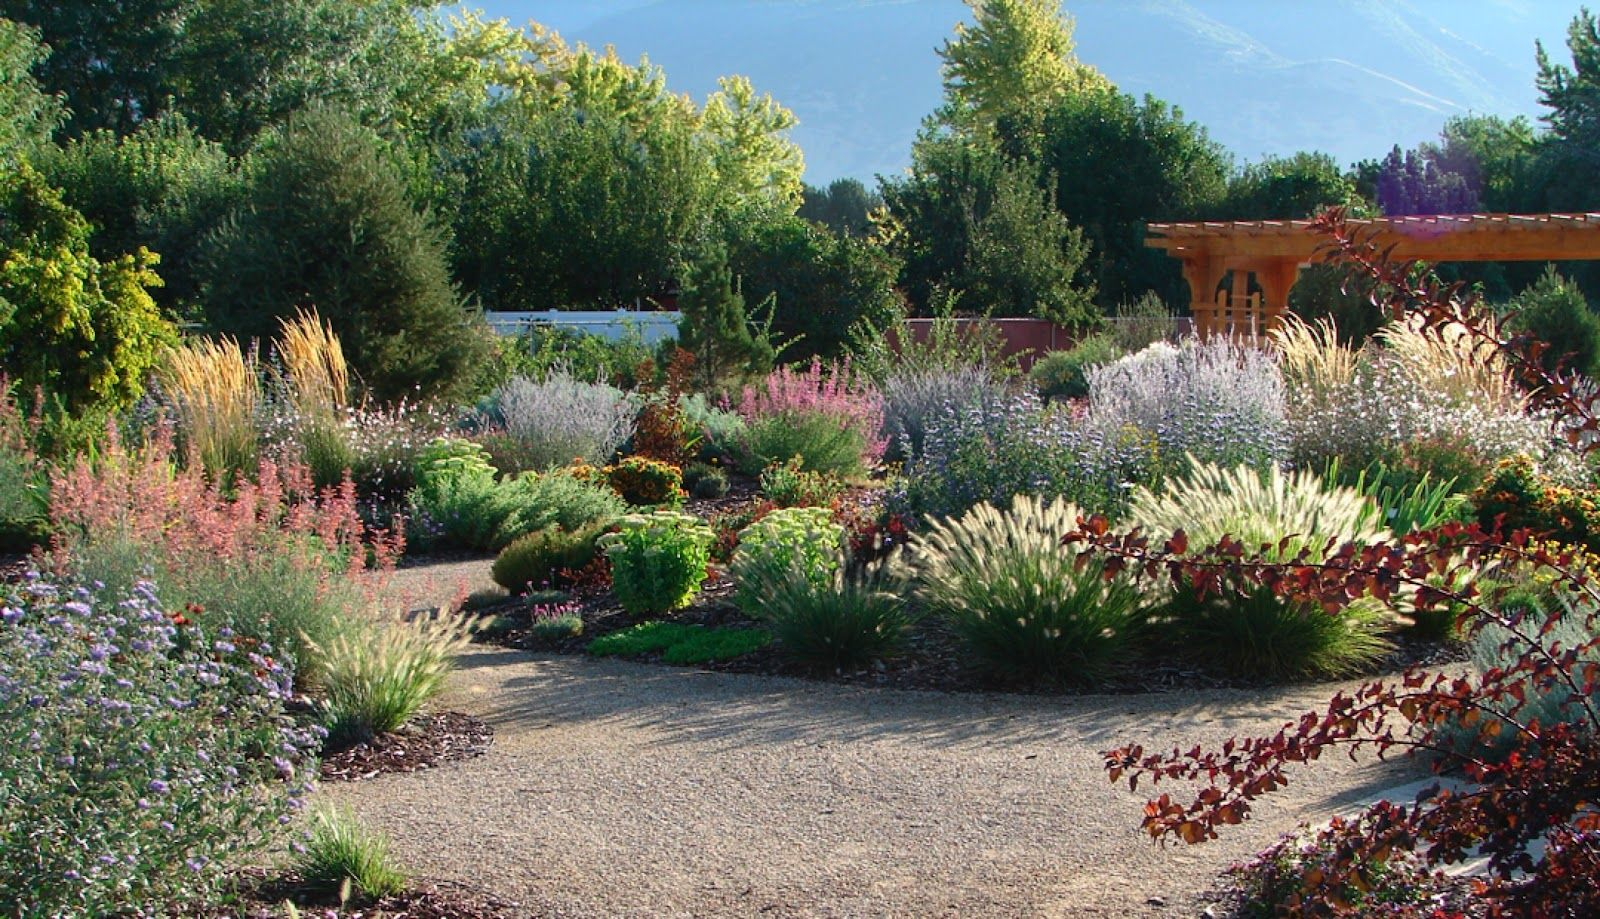 xeriscaping in utah | Oh yeah. Maybe a little of this: